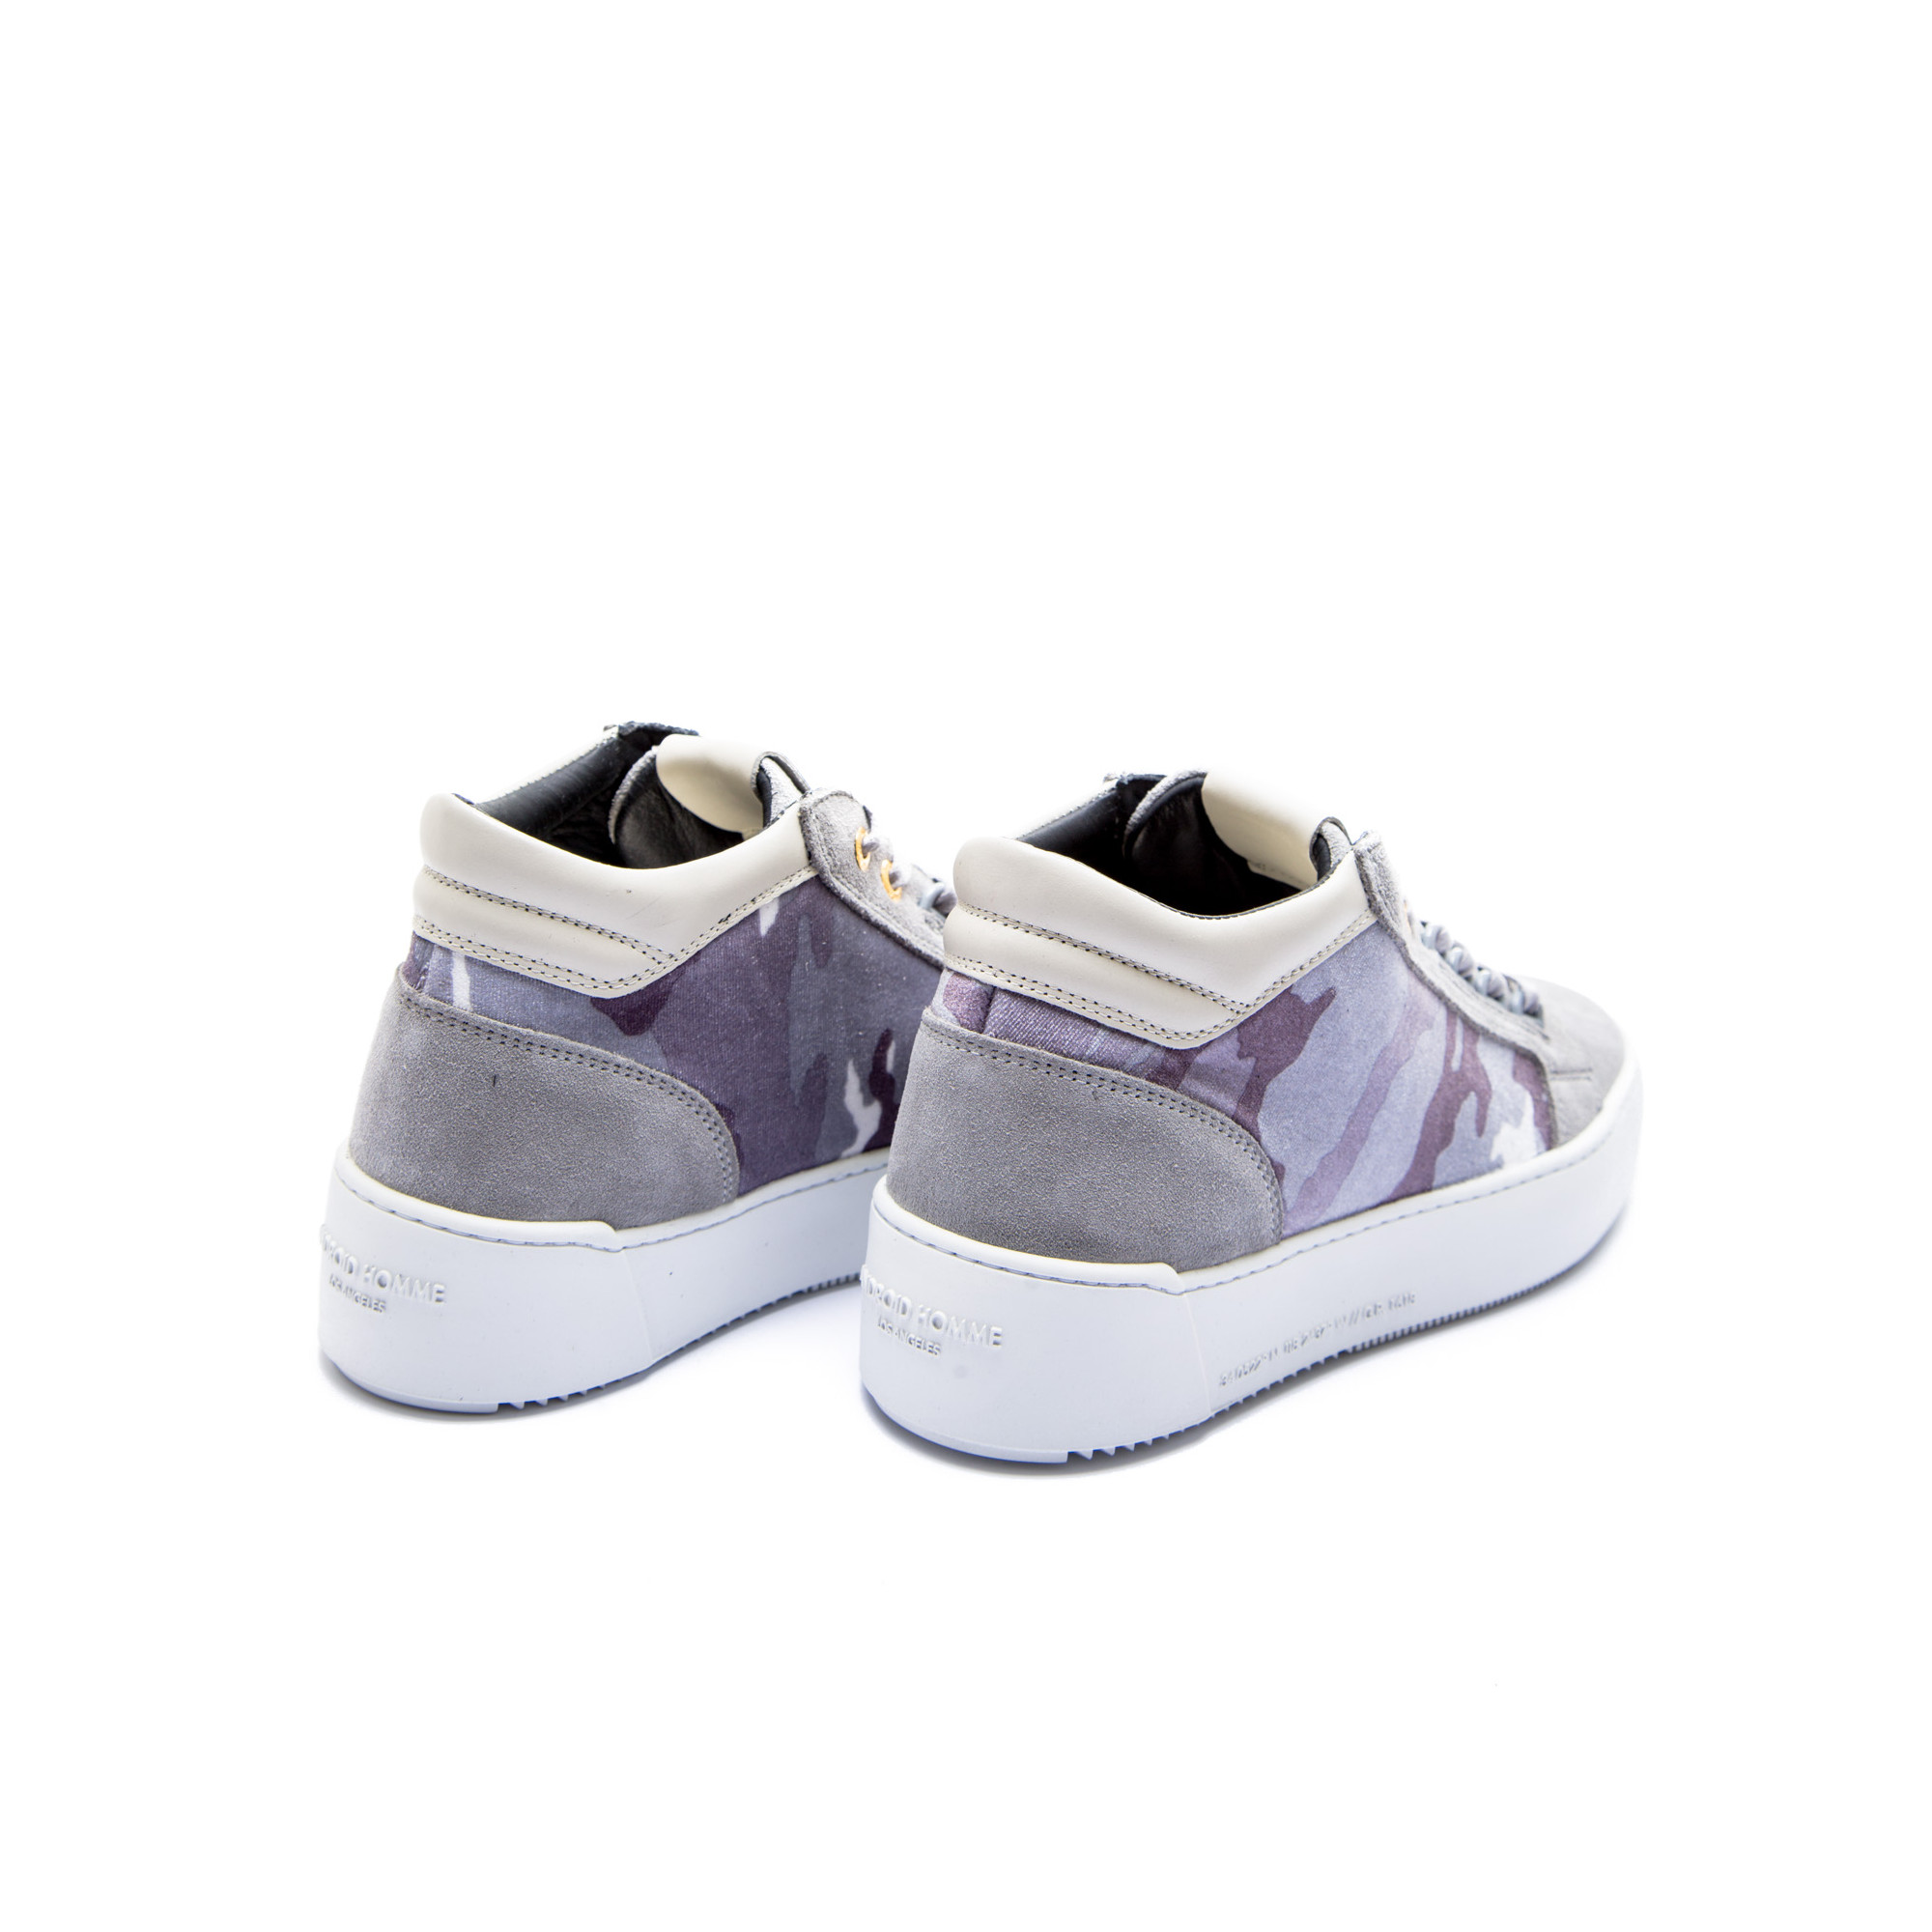 045bba8ed92f ... Android Homme propulsion mid Android Homme propulsion mid -  www.derodeloper.com - Derodeloper ...